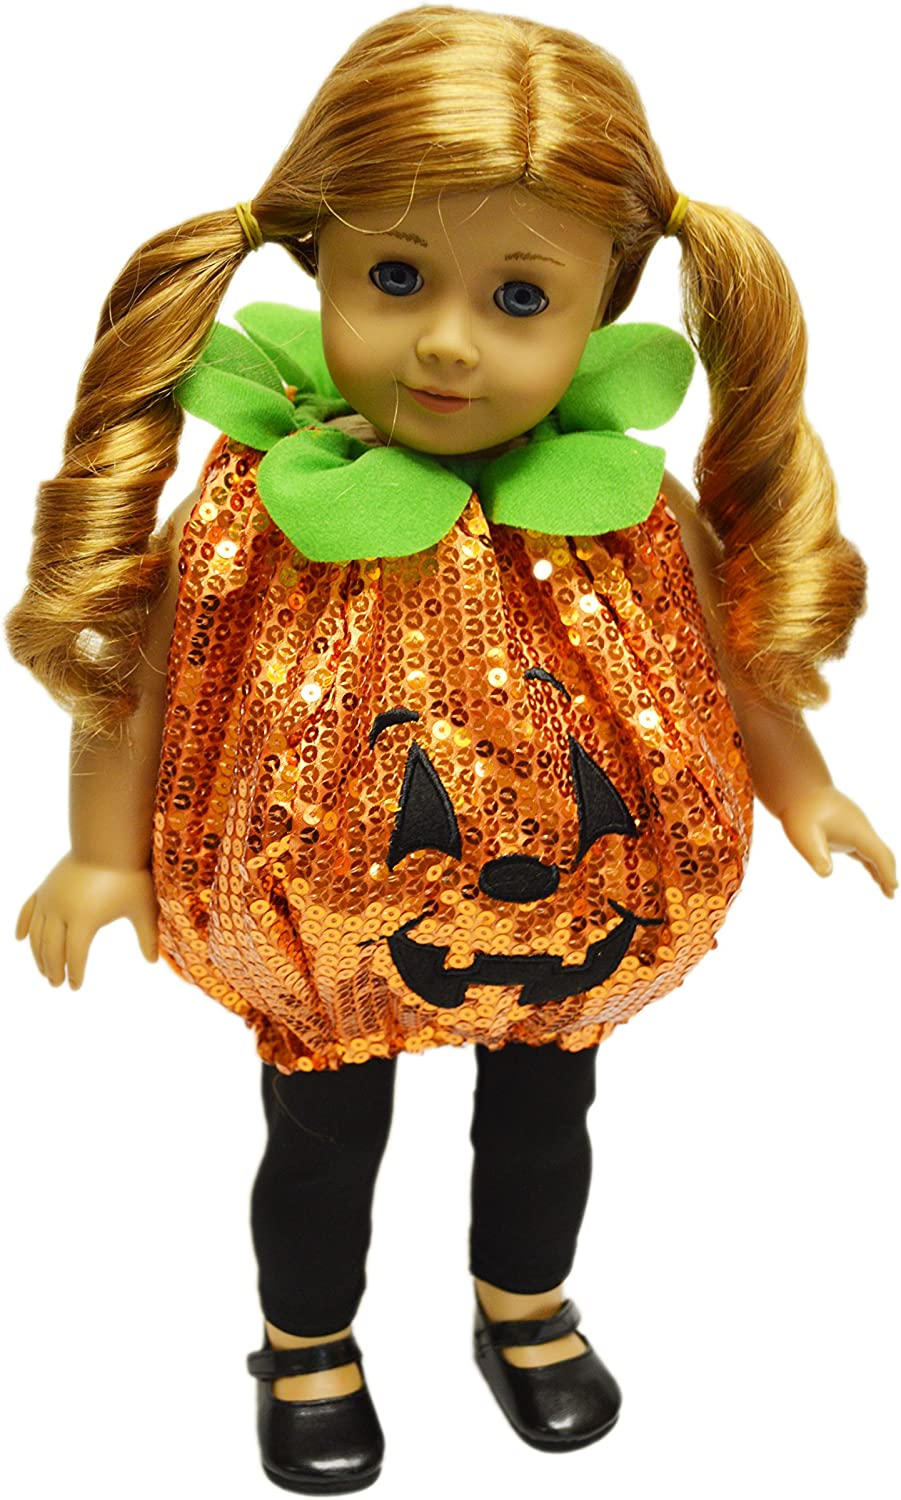 Halloween Outfit Candy Corn Pajamas fits 18 inch American Girl Doll Clothes